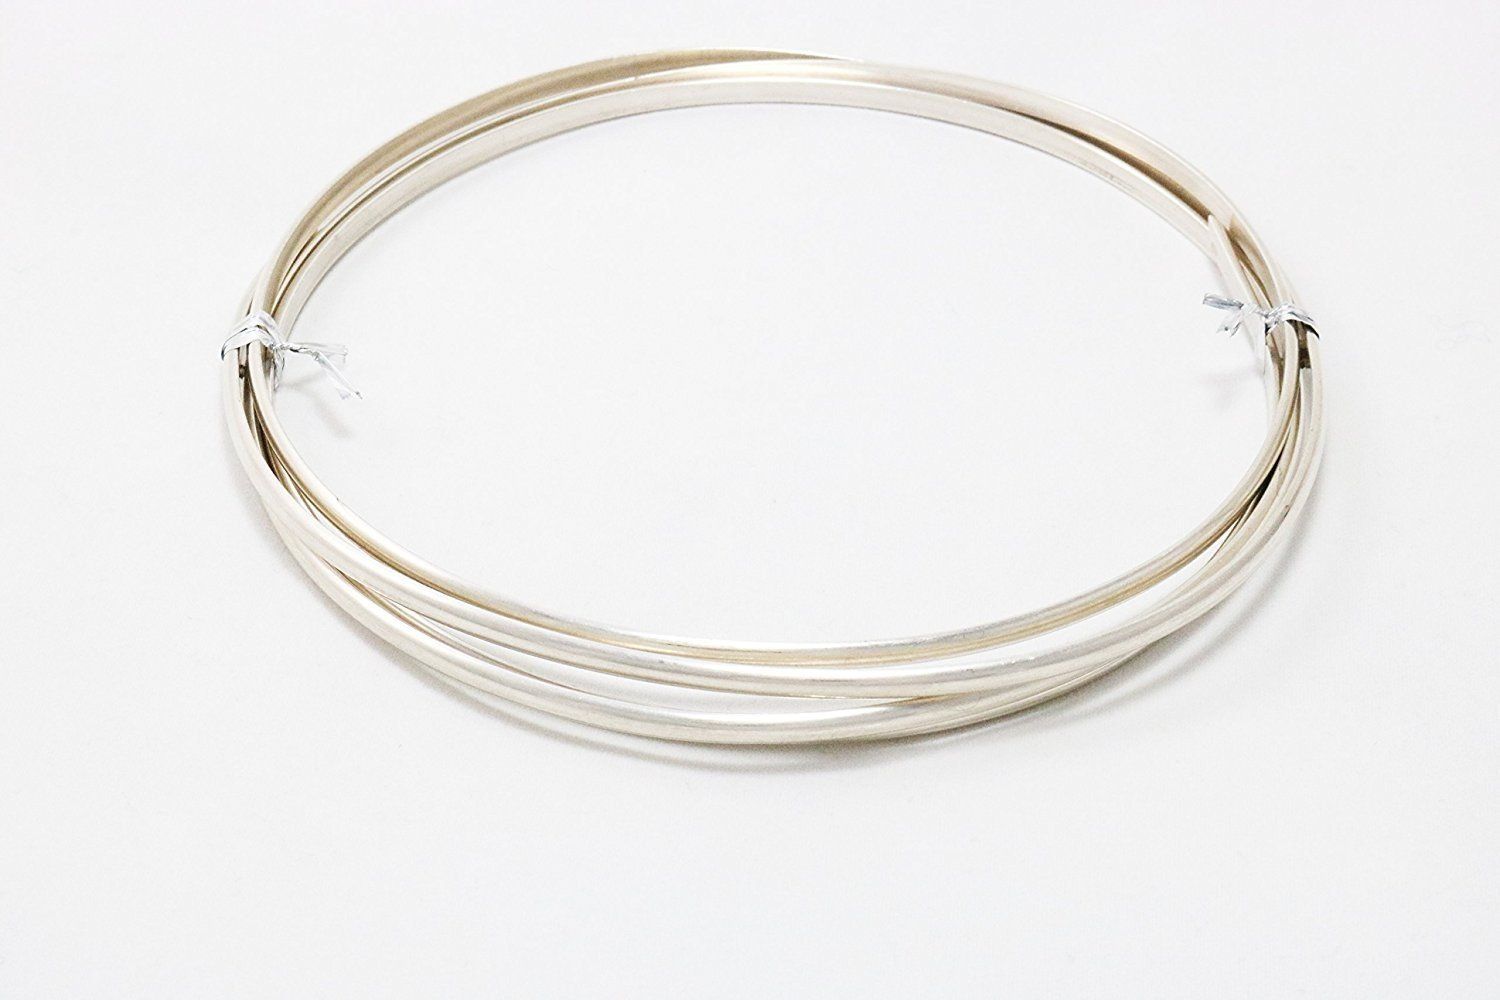 24 Gauge, 1/10 Sterling Silver Filled Wire, Half Round, Dead Soft - 5FT from Craft Wire 8932704